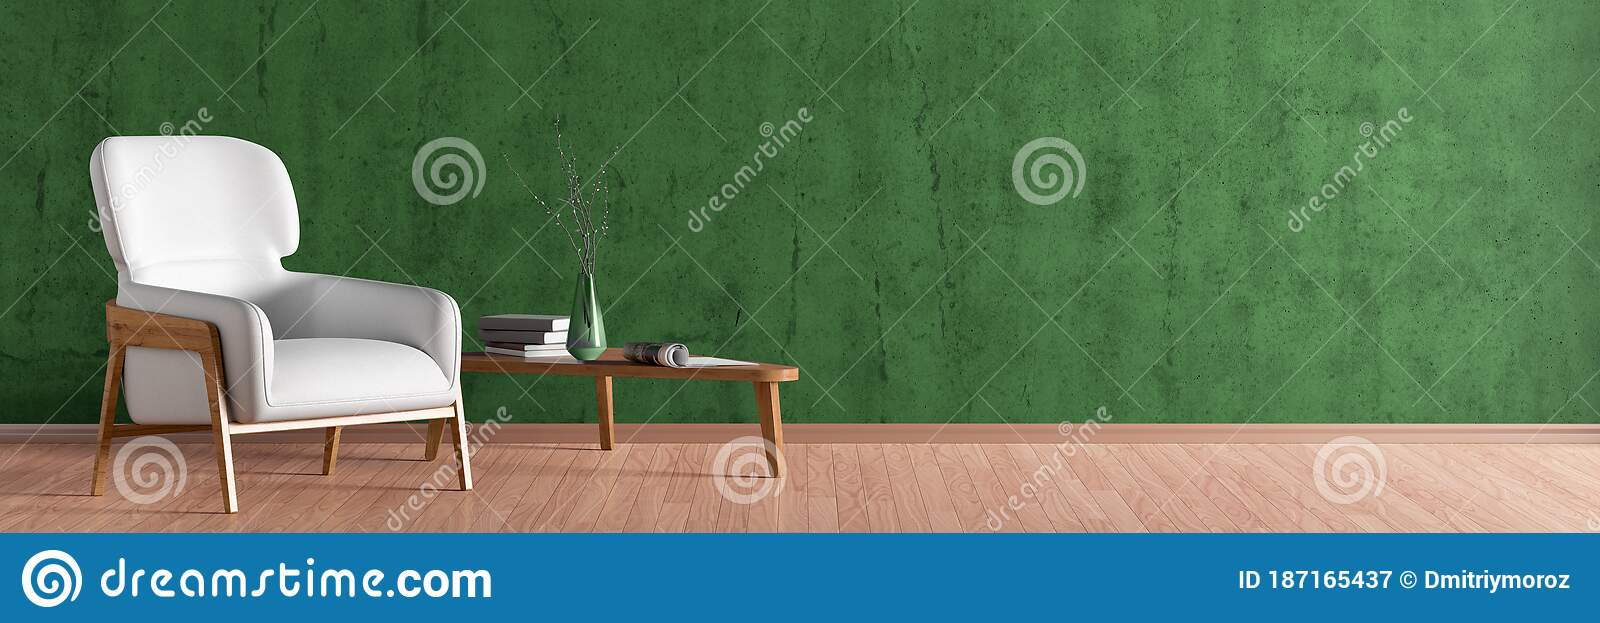 interior of living room with white leather armchair and wooden triangular coffee table stock illustration illustration of contemporary decor 187165437